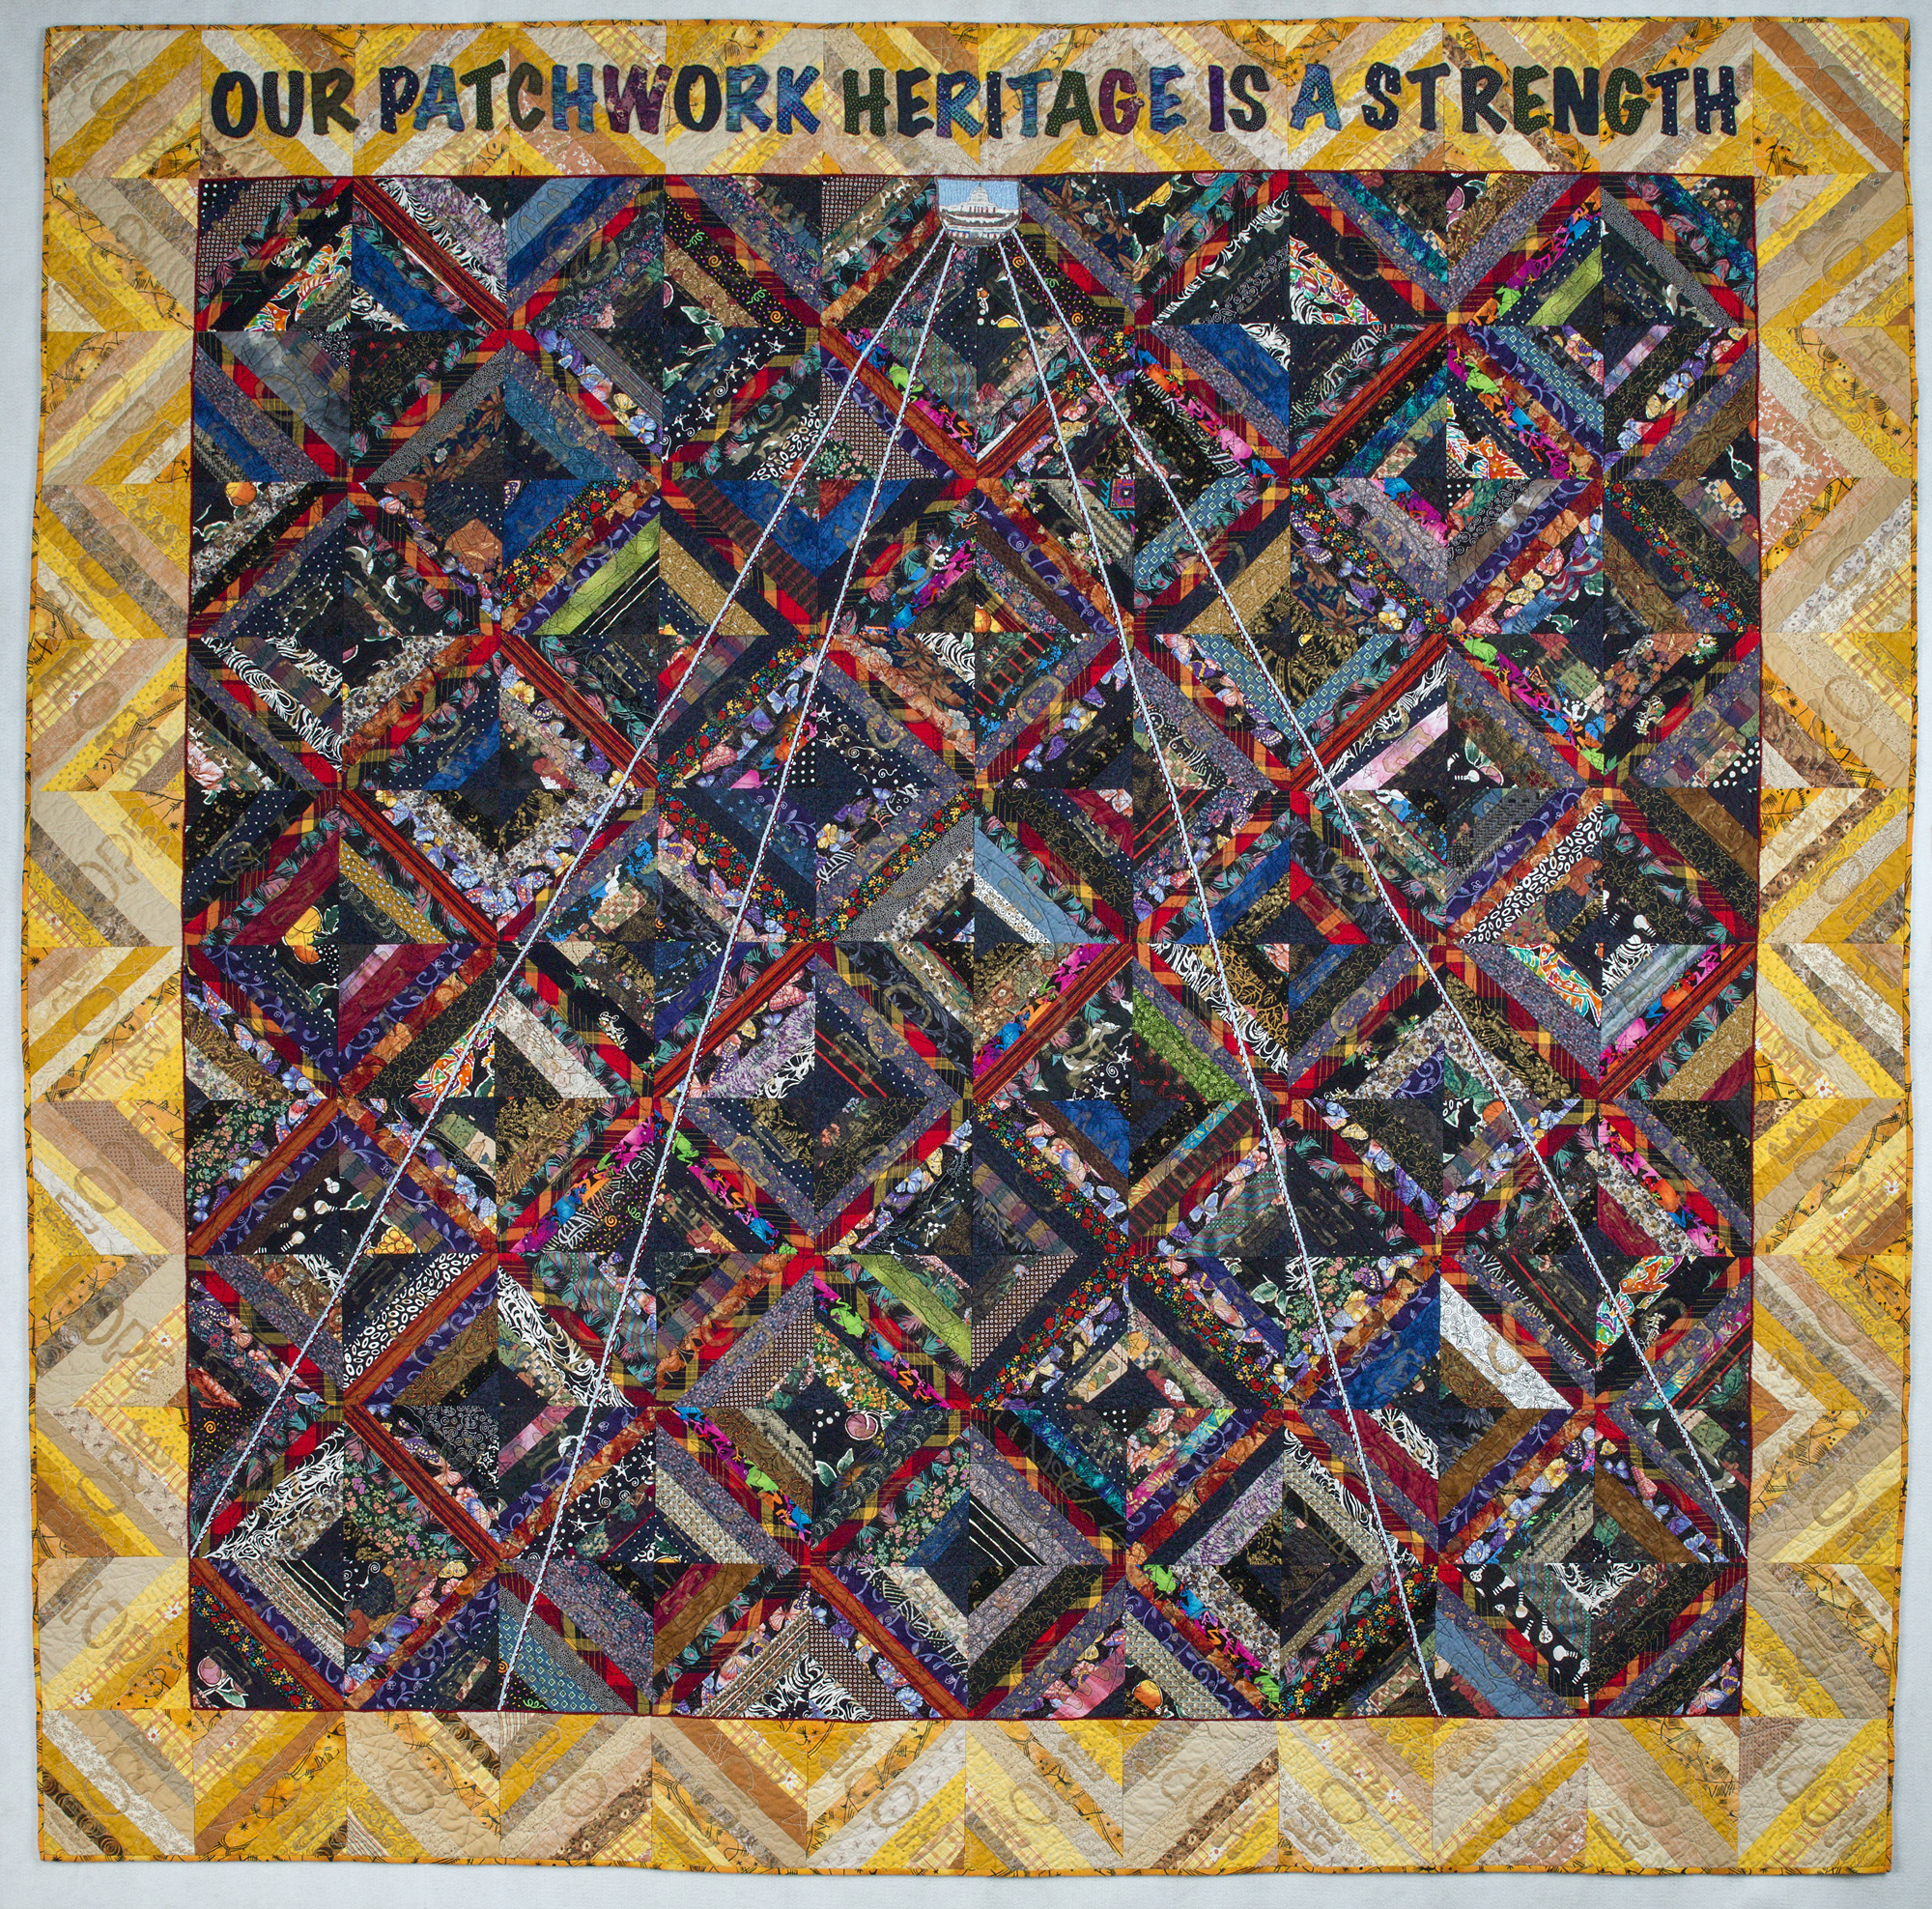 57d38c674b0 A quilt that is a patchwork with a variety of colored diamonds and a border  with